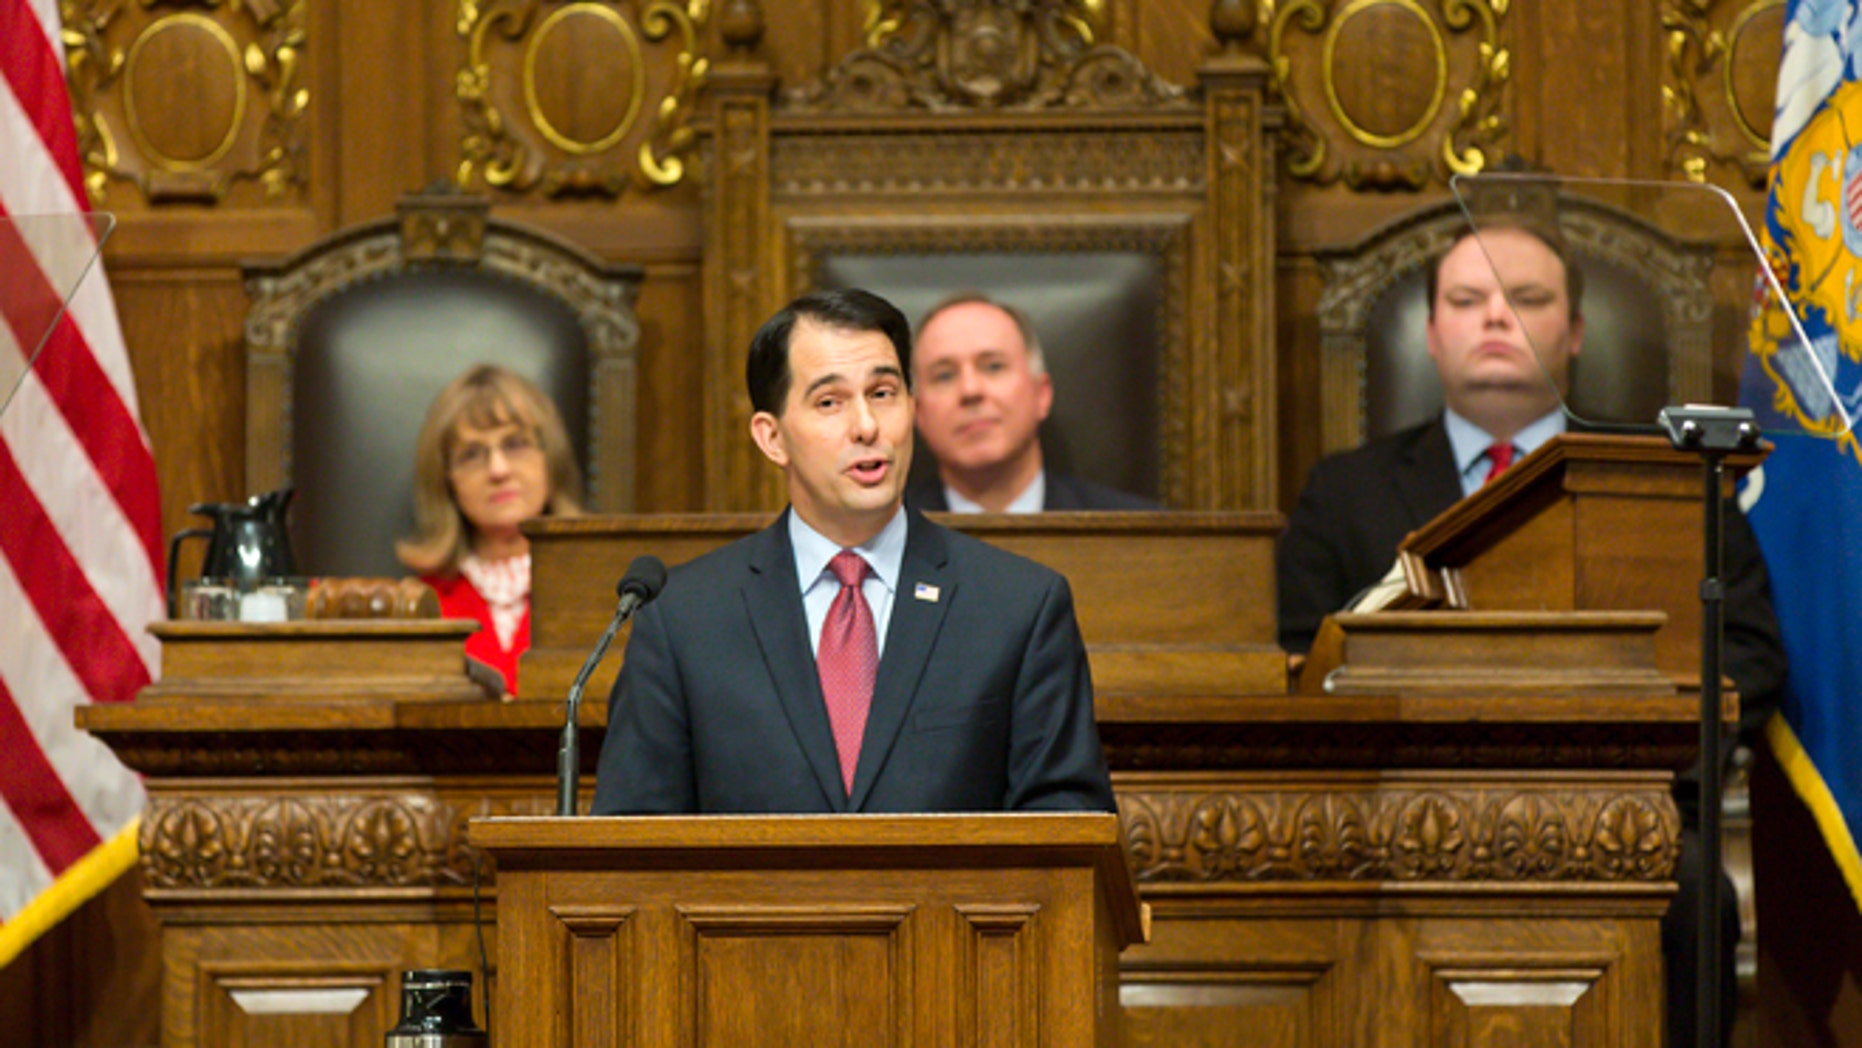 Jan. 13, 2015: Wisconsin Gov. Scott Walker, center, addresses a joint session of the state Legislature during the Governor's State of the State speech in the Assembly chambers at the state Capitol in Madison, Wis.